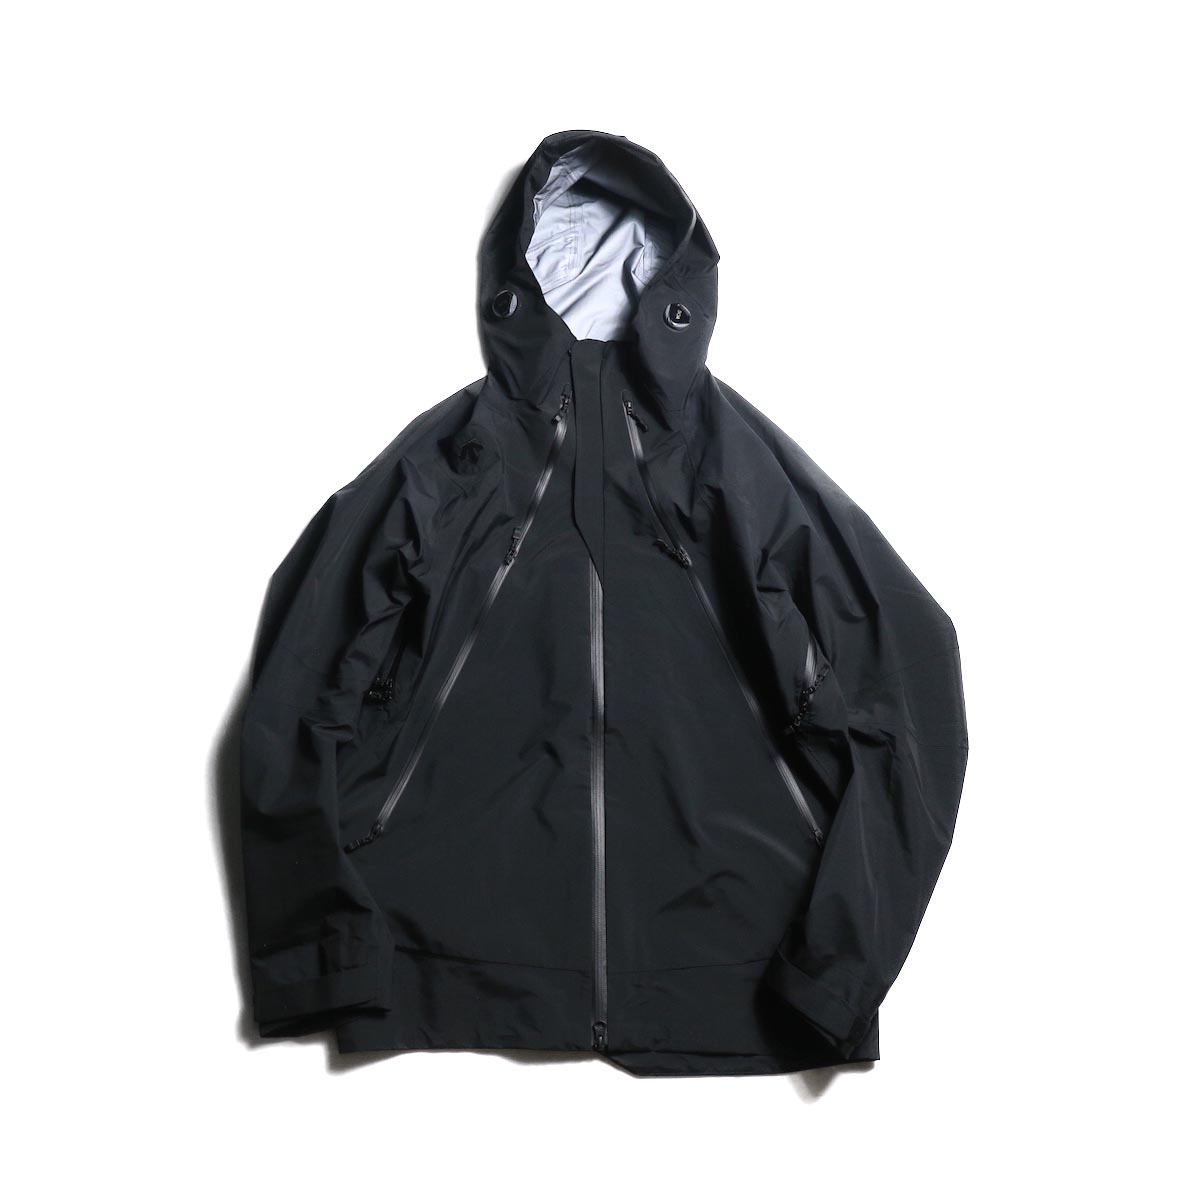 DESCENTE OUTDOOR / GORE-TEX BOA MOUNTAIN JACKET (Black)